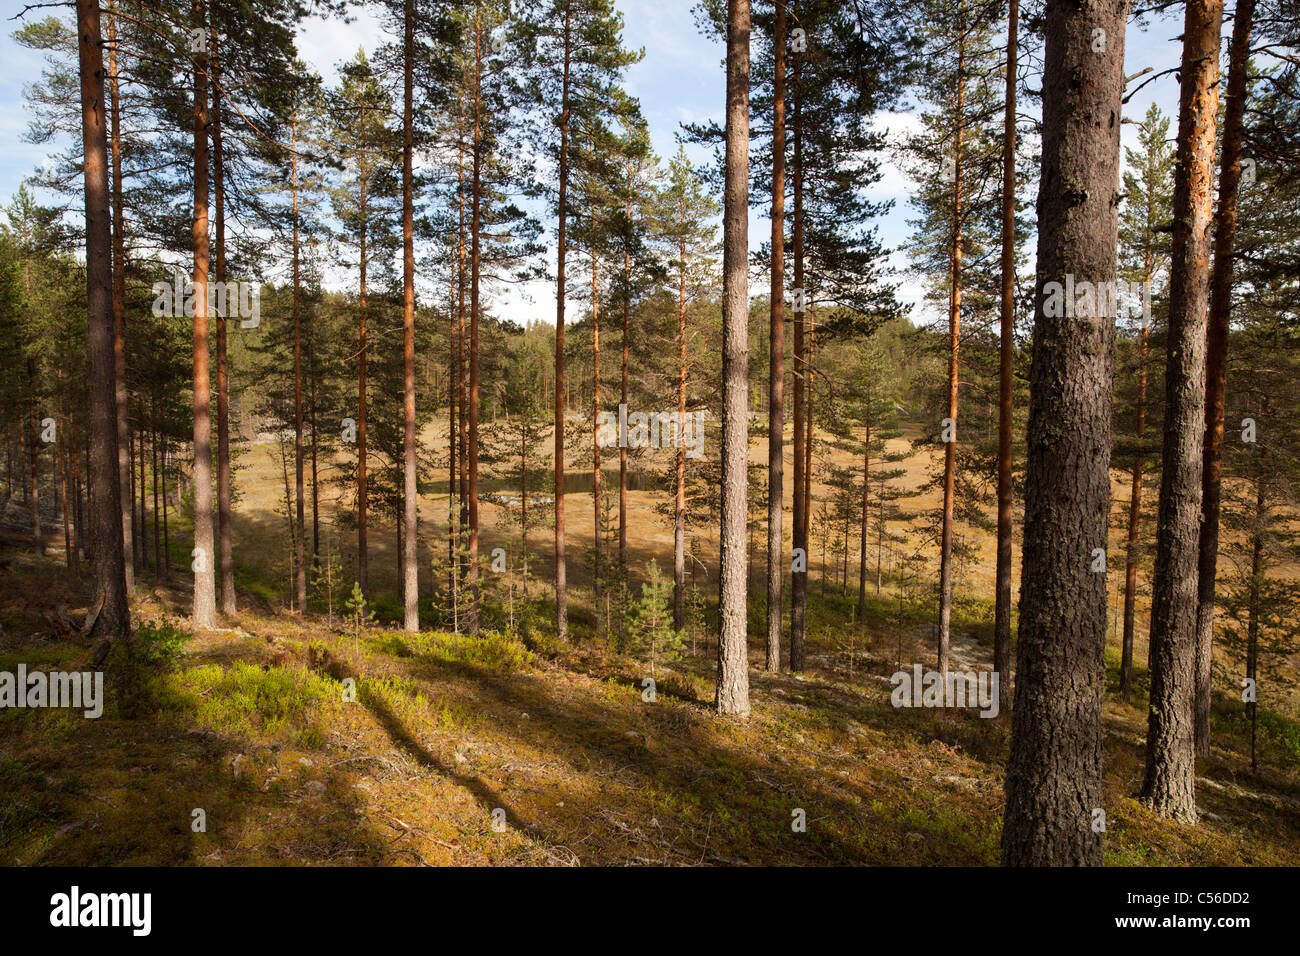 Finnish esker landscape with young pine ( pinus sylvestris ) forest and swamps between esker ridges , Finland - Stock Image